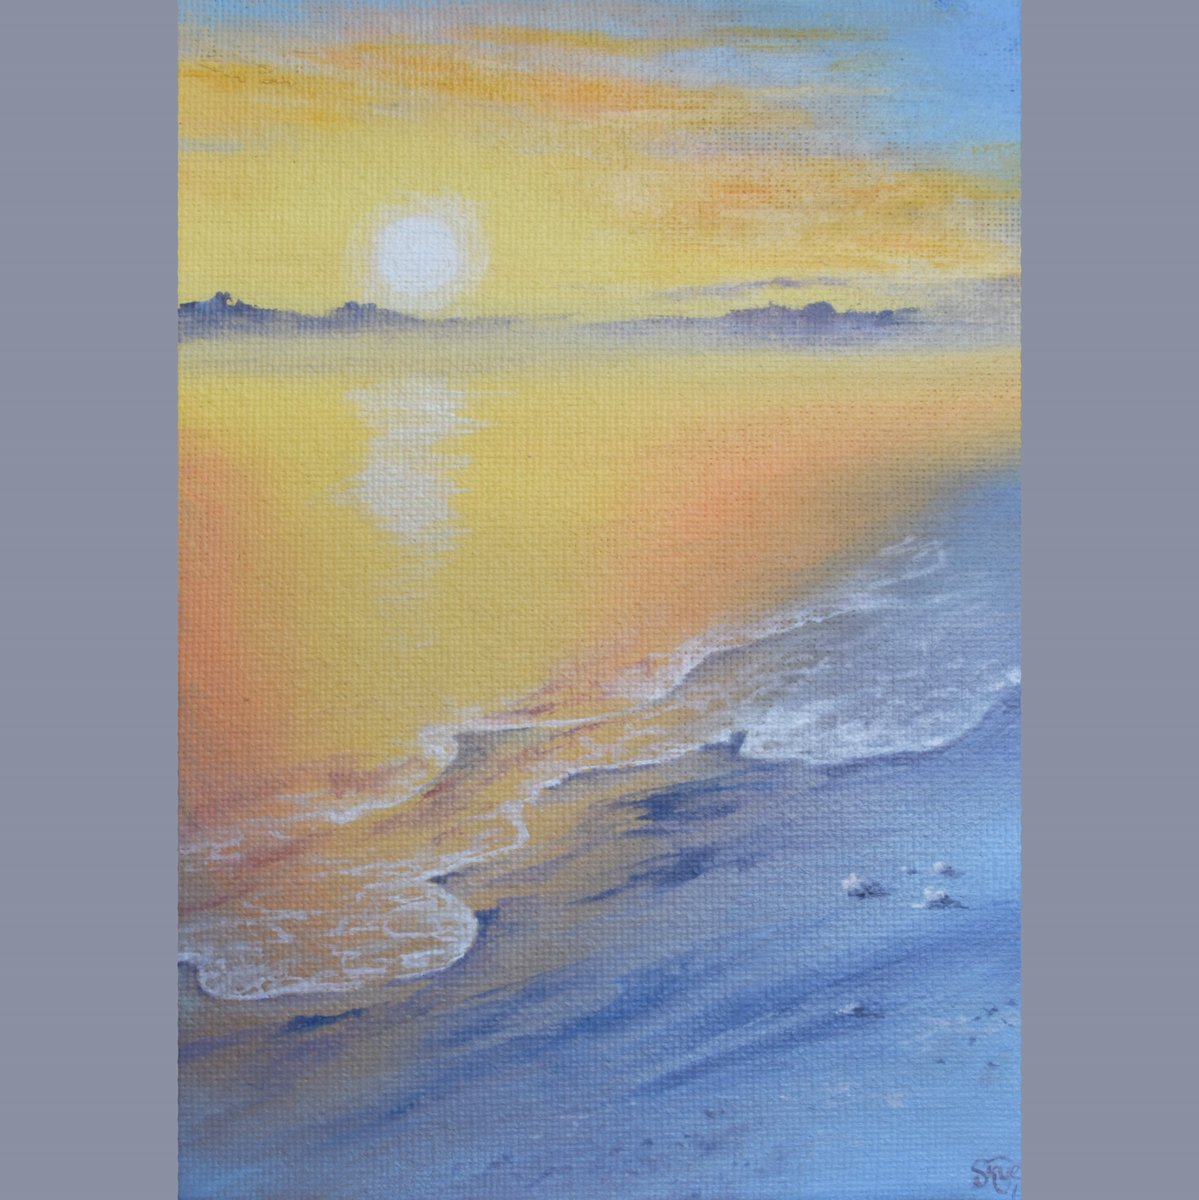 3rd in the #sunset #series ...Hope you like it as much as the others Hope you all have a #Creative week  #love #beachlife #ocean #Inspire<br>http://pic.twitter.com/bfgpnwmWMr